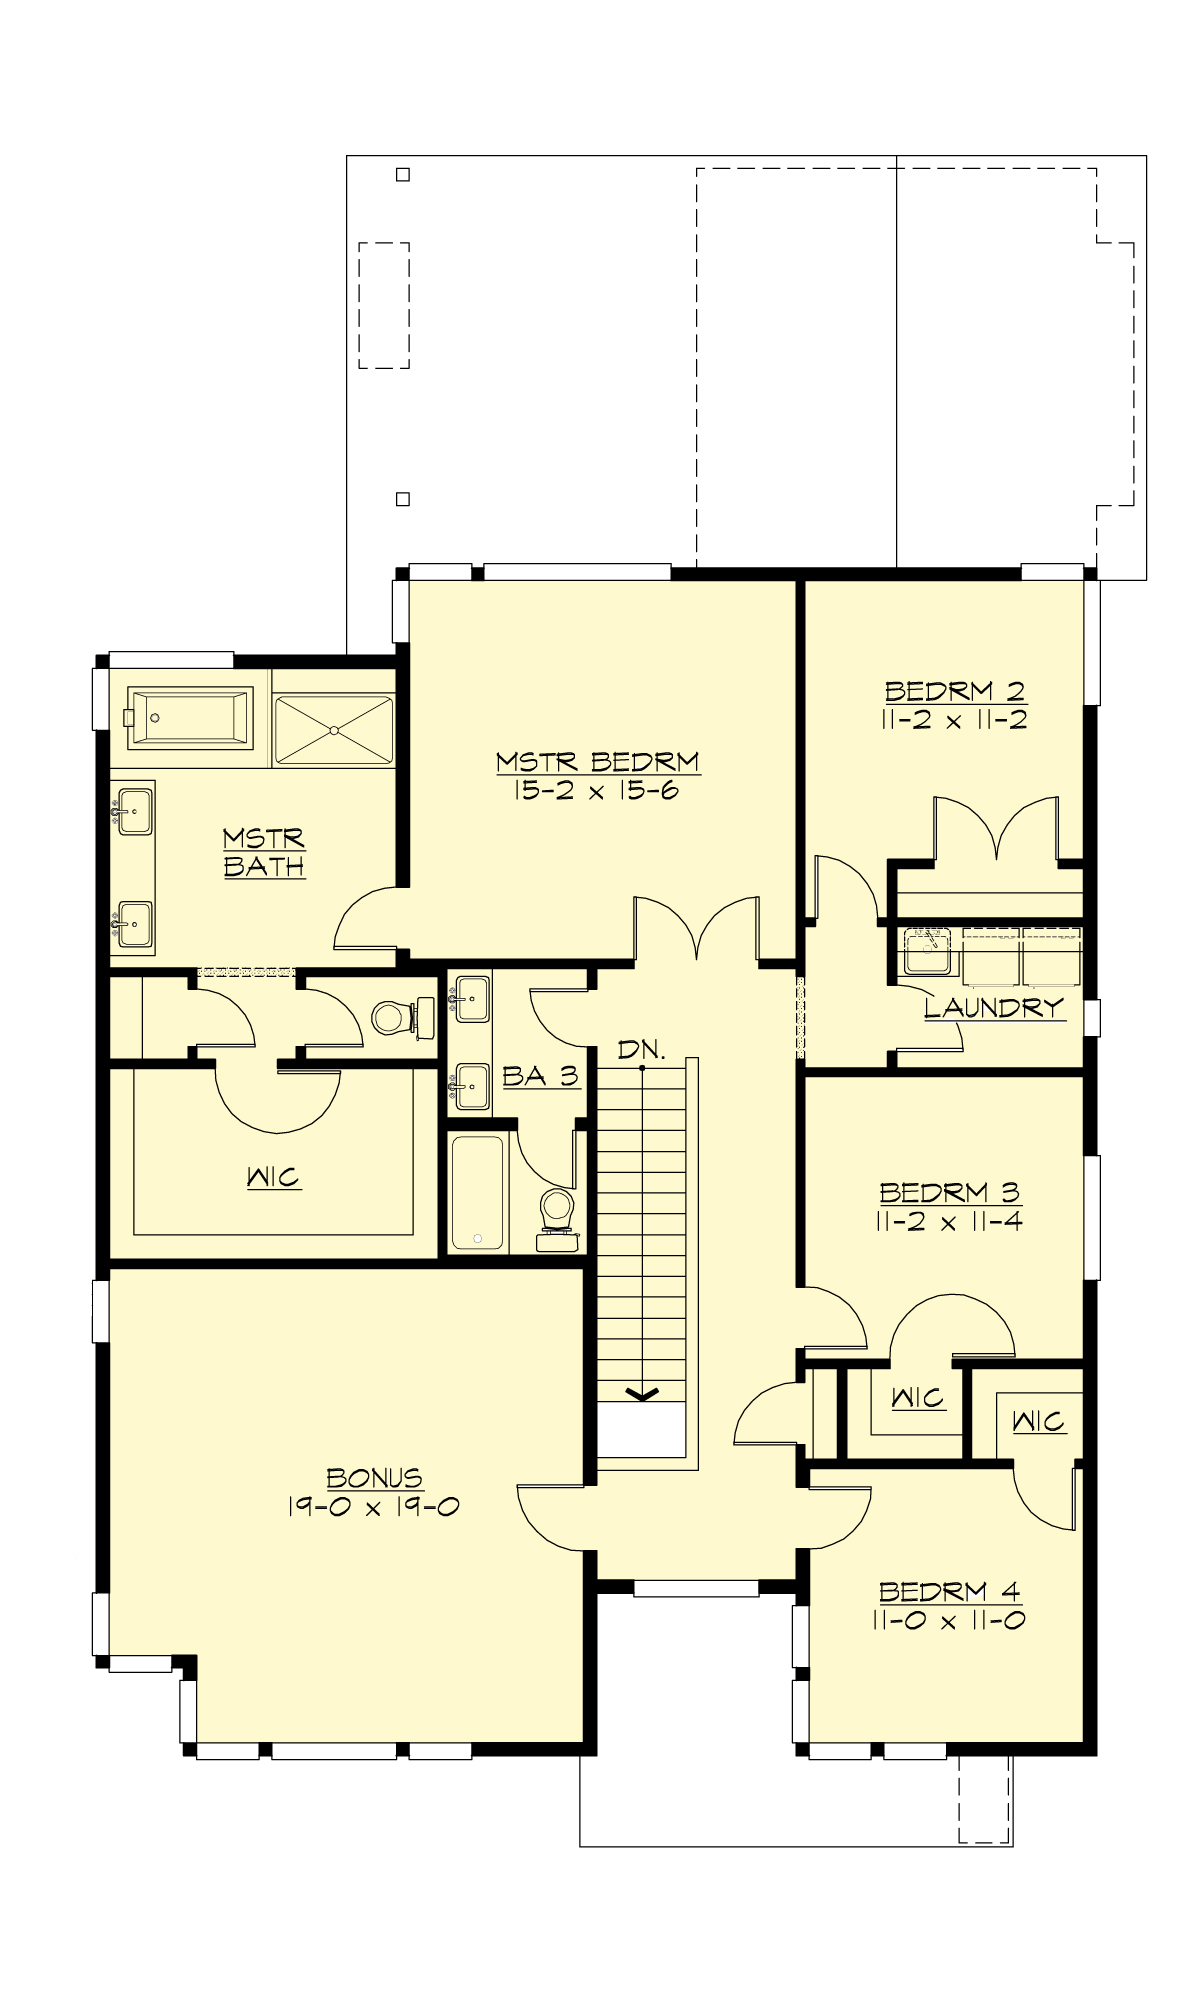 Aries 5537 - 4 Bedrooms and 3.5 Baths | The House Designers